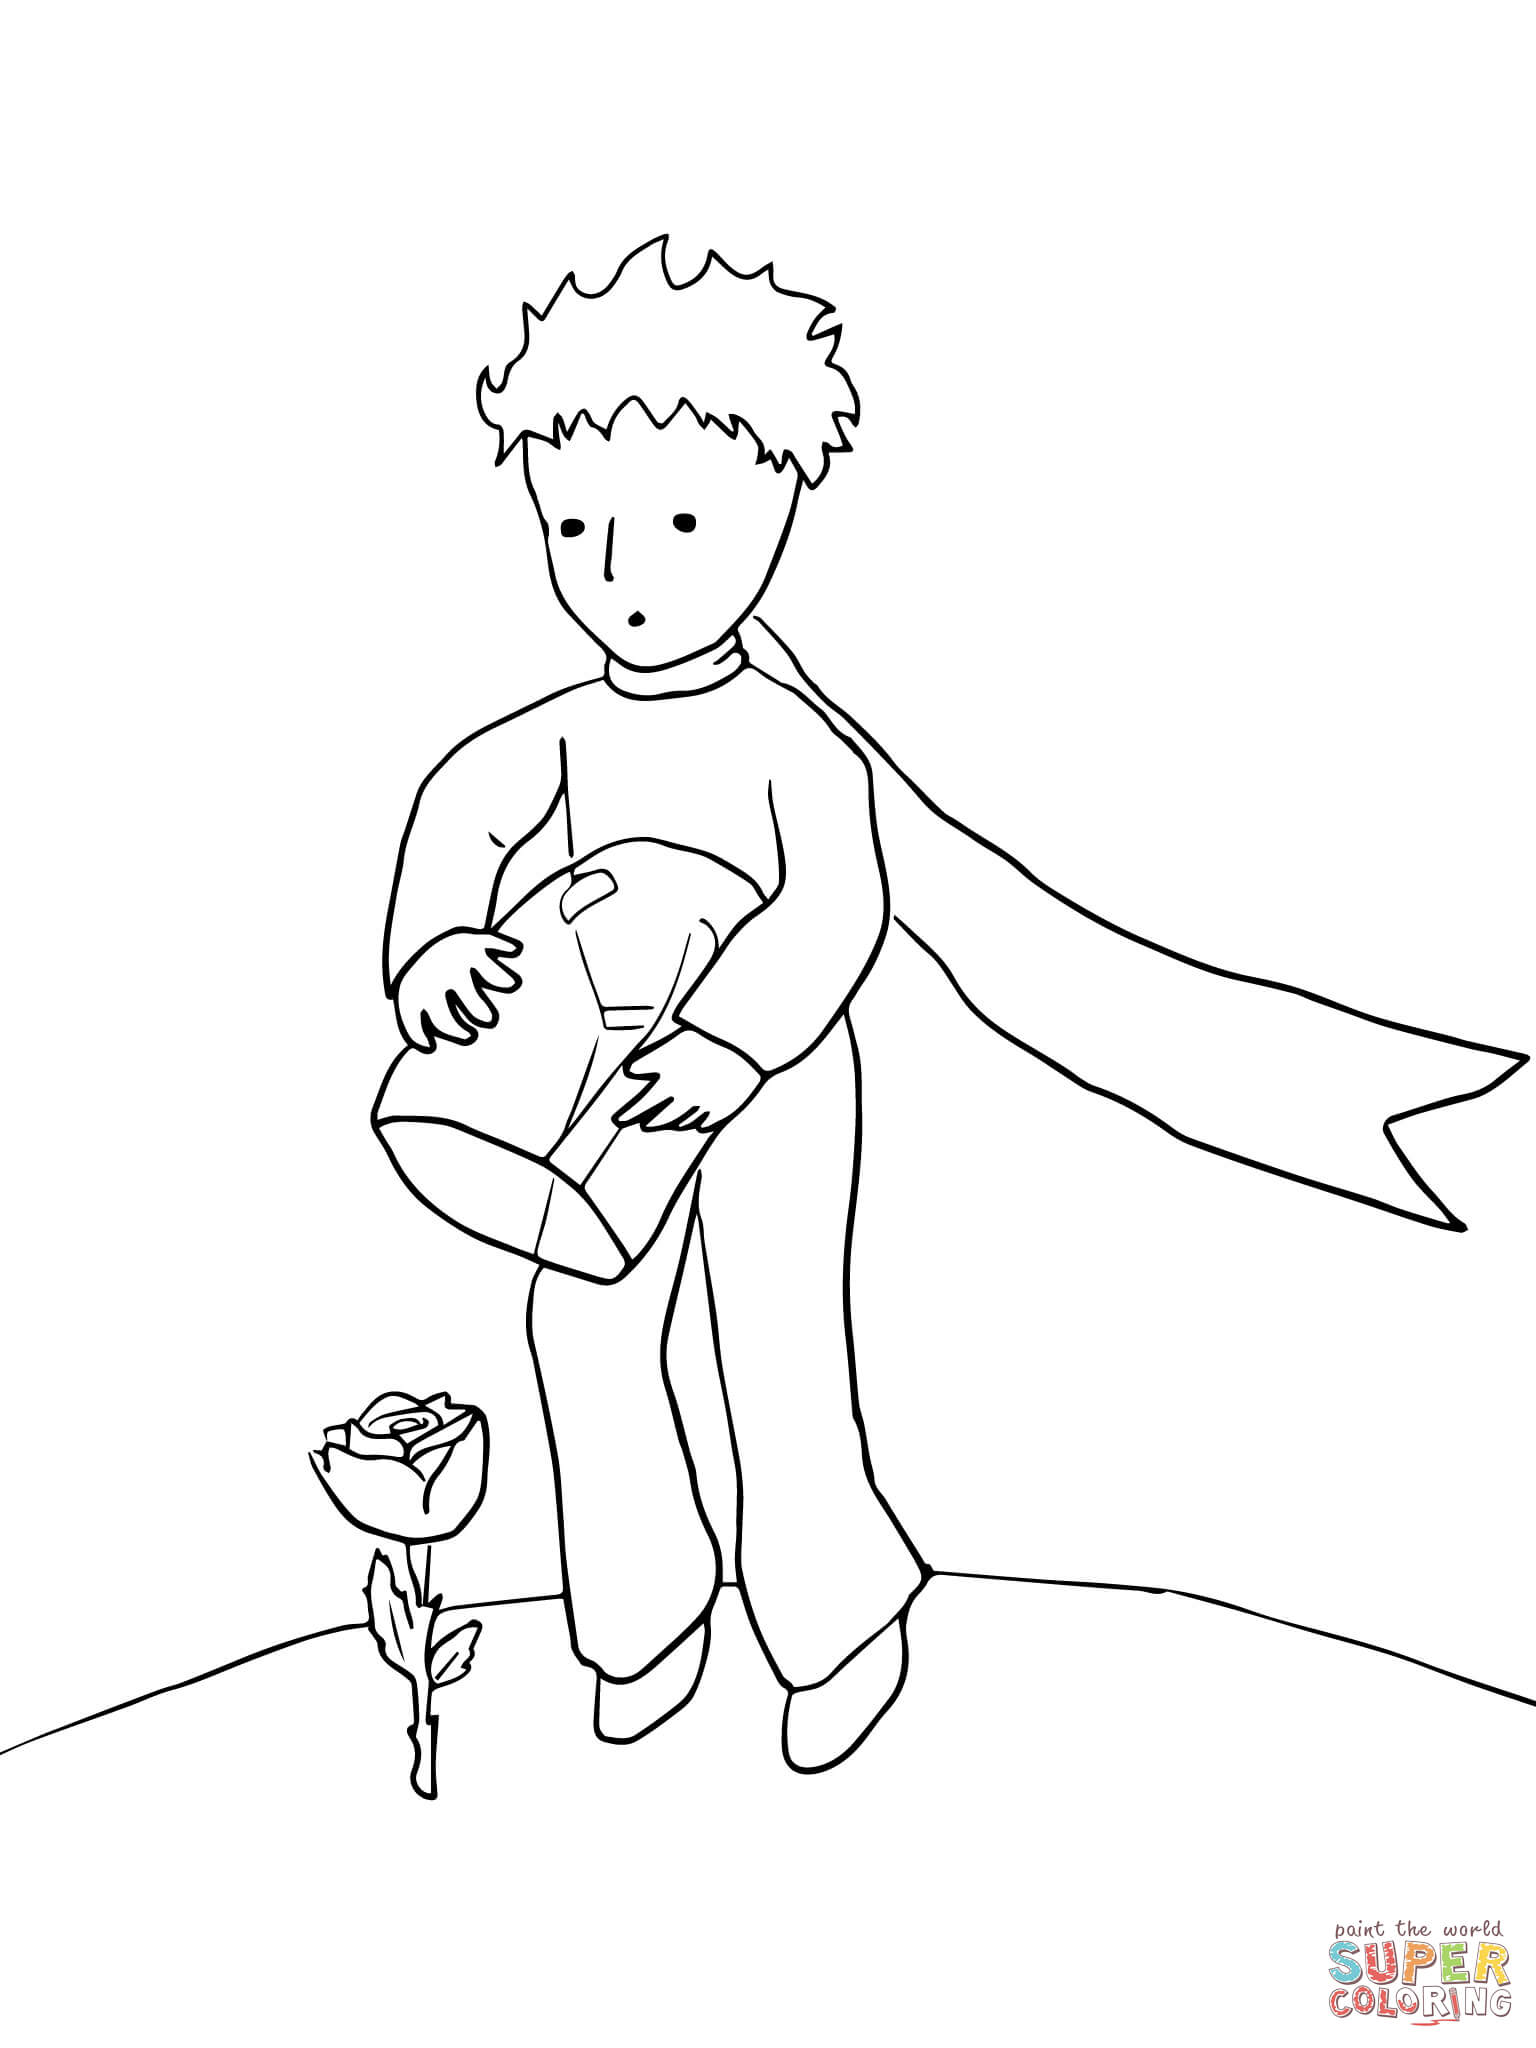 The Little Prince Protects His Rose Coloring Page Free Printable